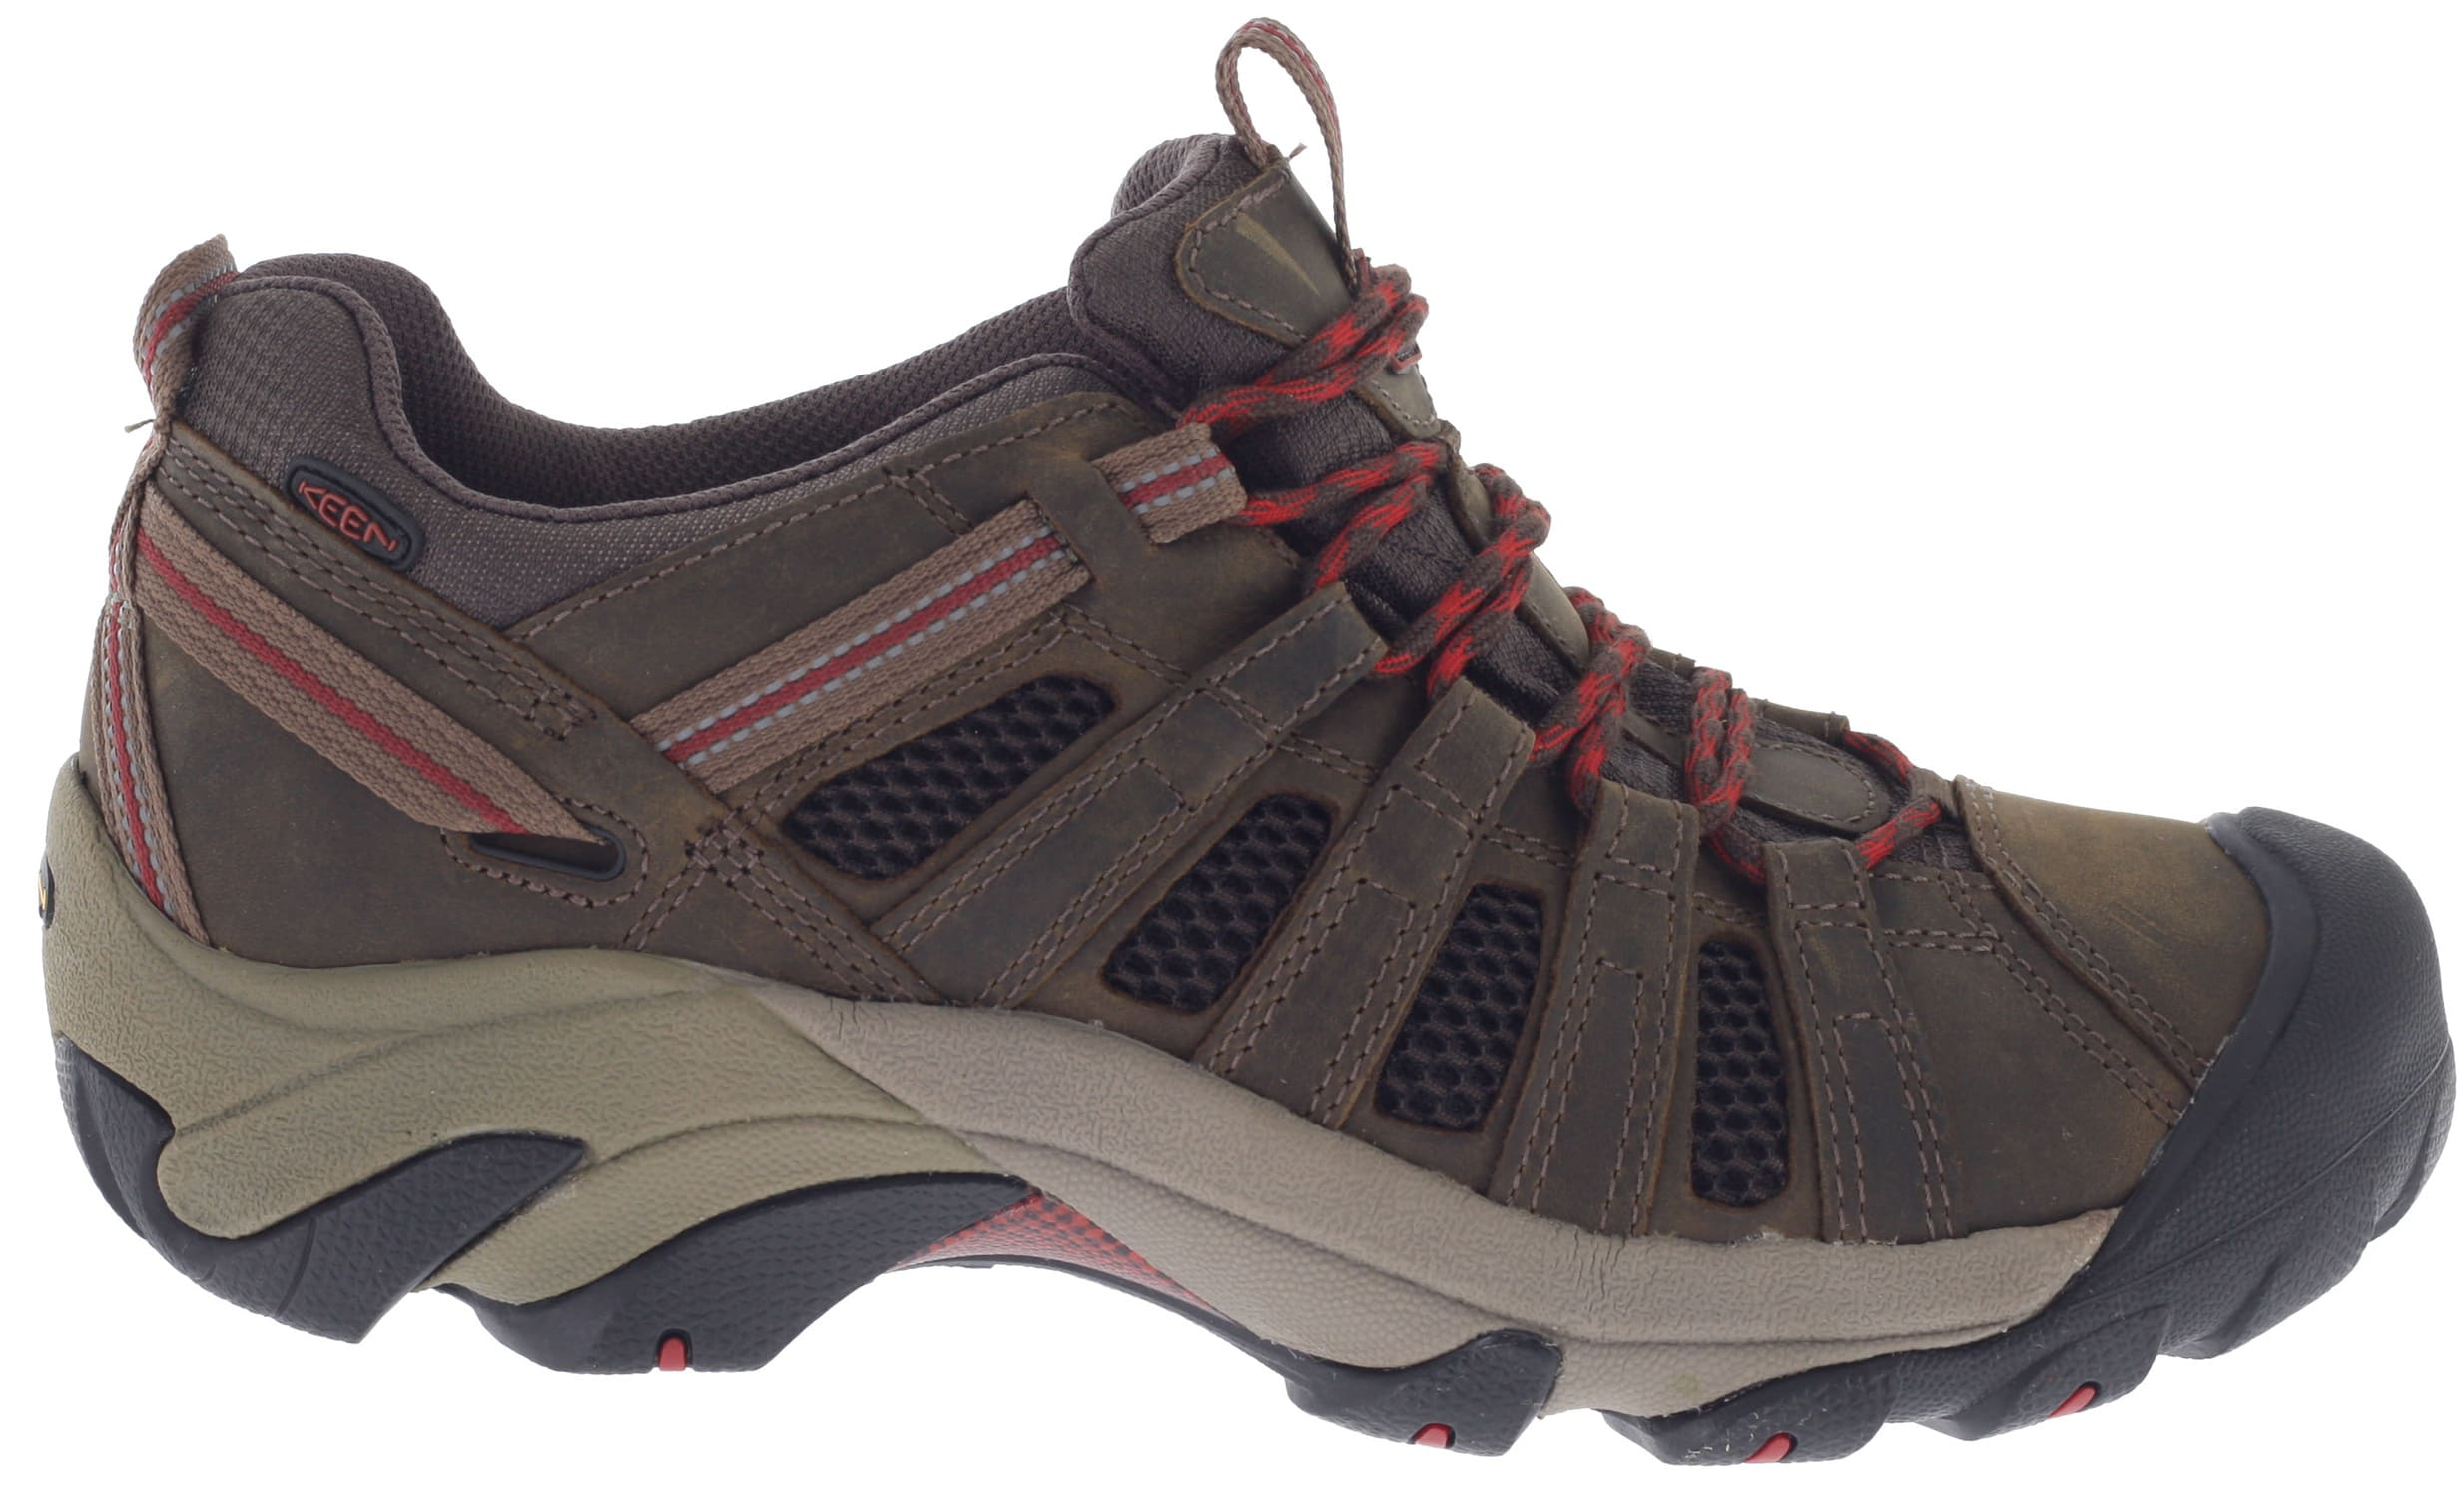 Keen Voyageur Low Hiking Shoes Black Olive/Bossa Nova - Men's - GEAR.